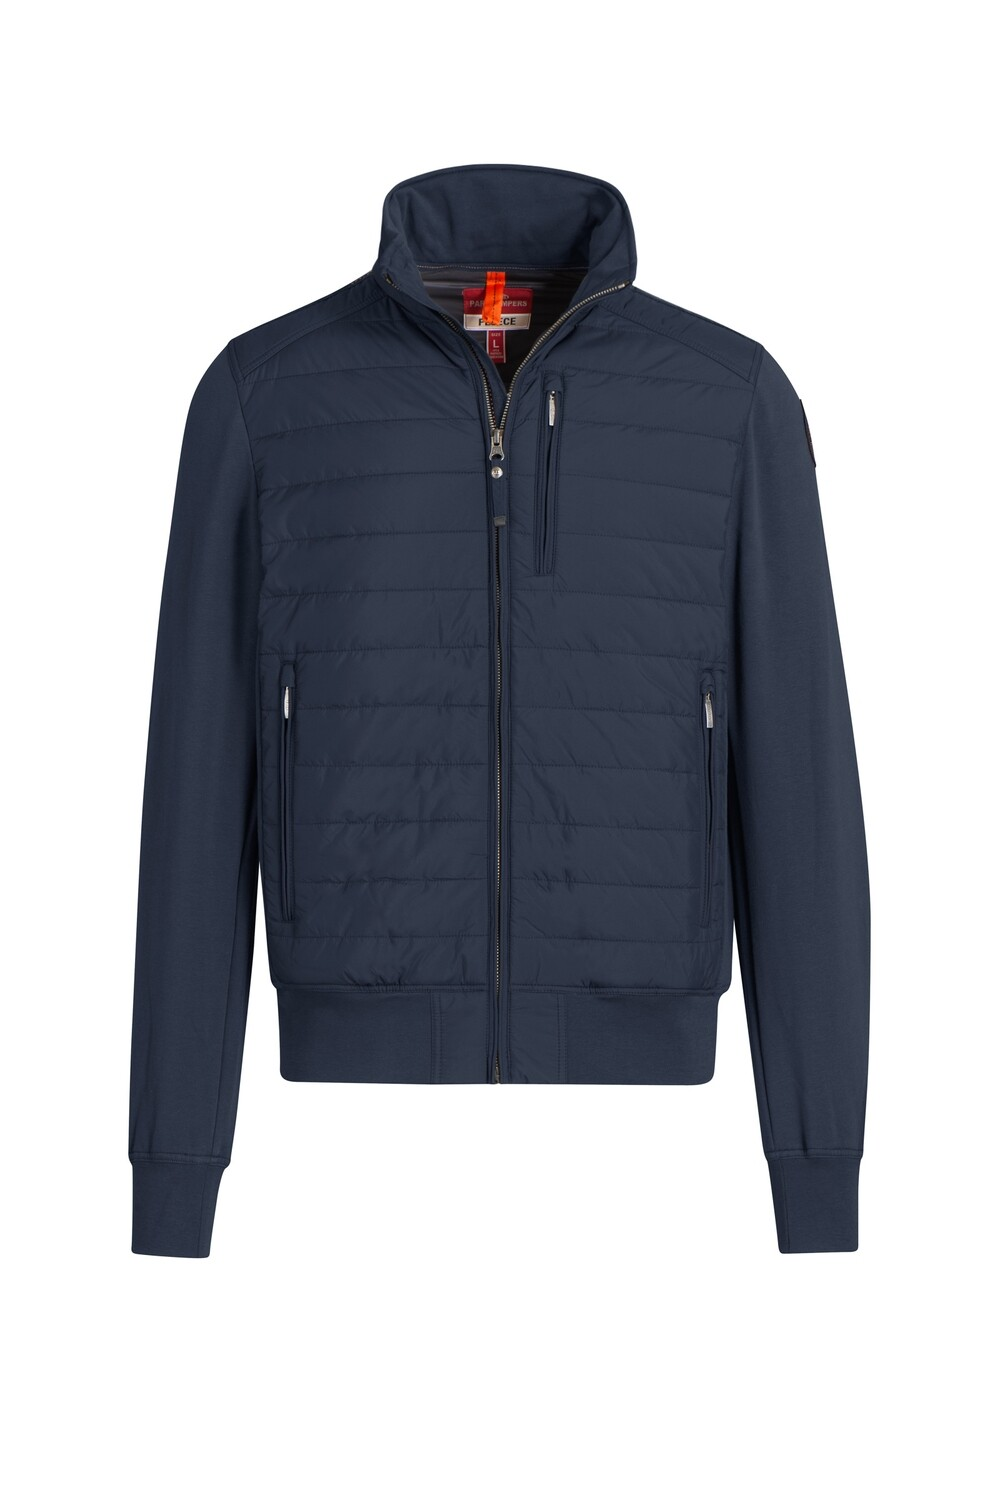 Parajumpers Herenjas | Elliot | Navy